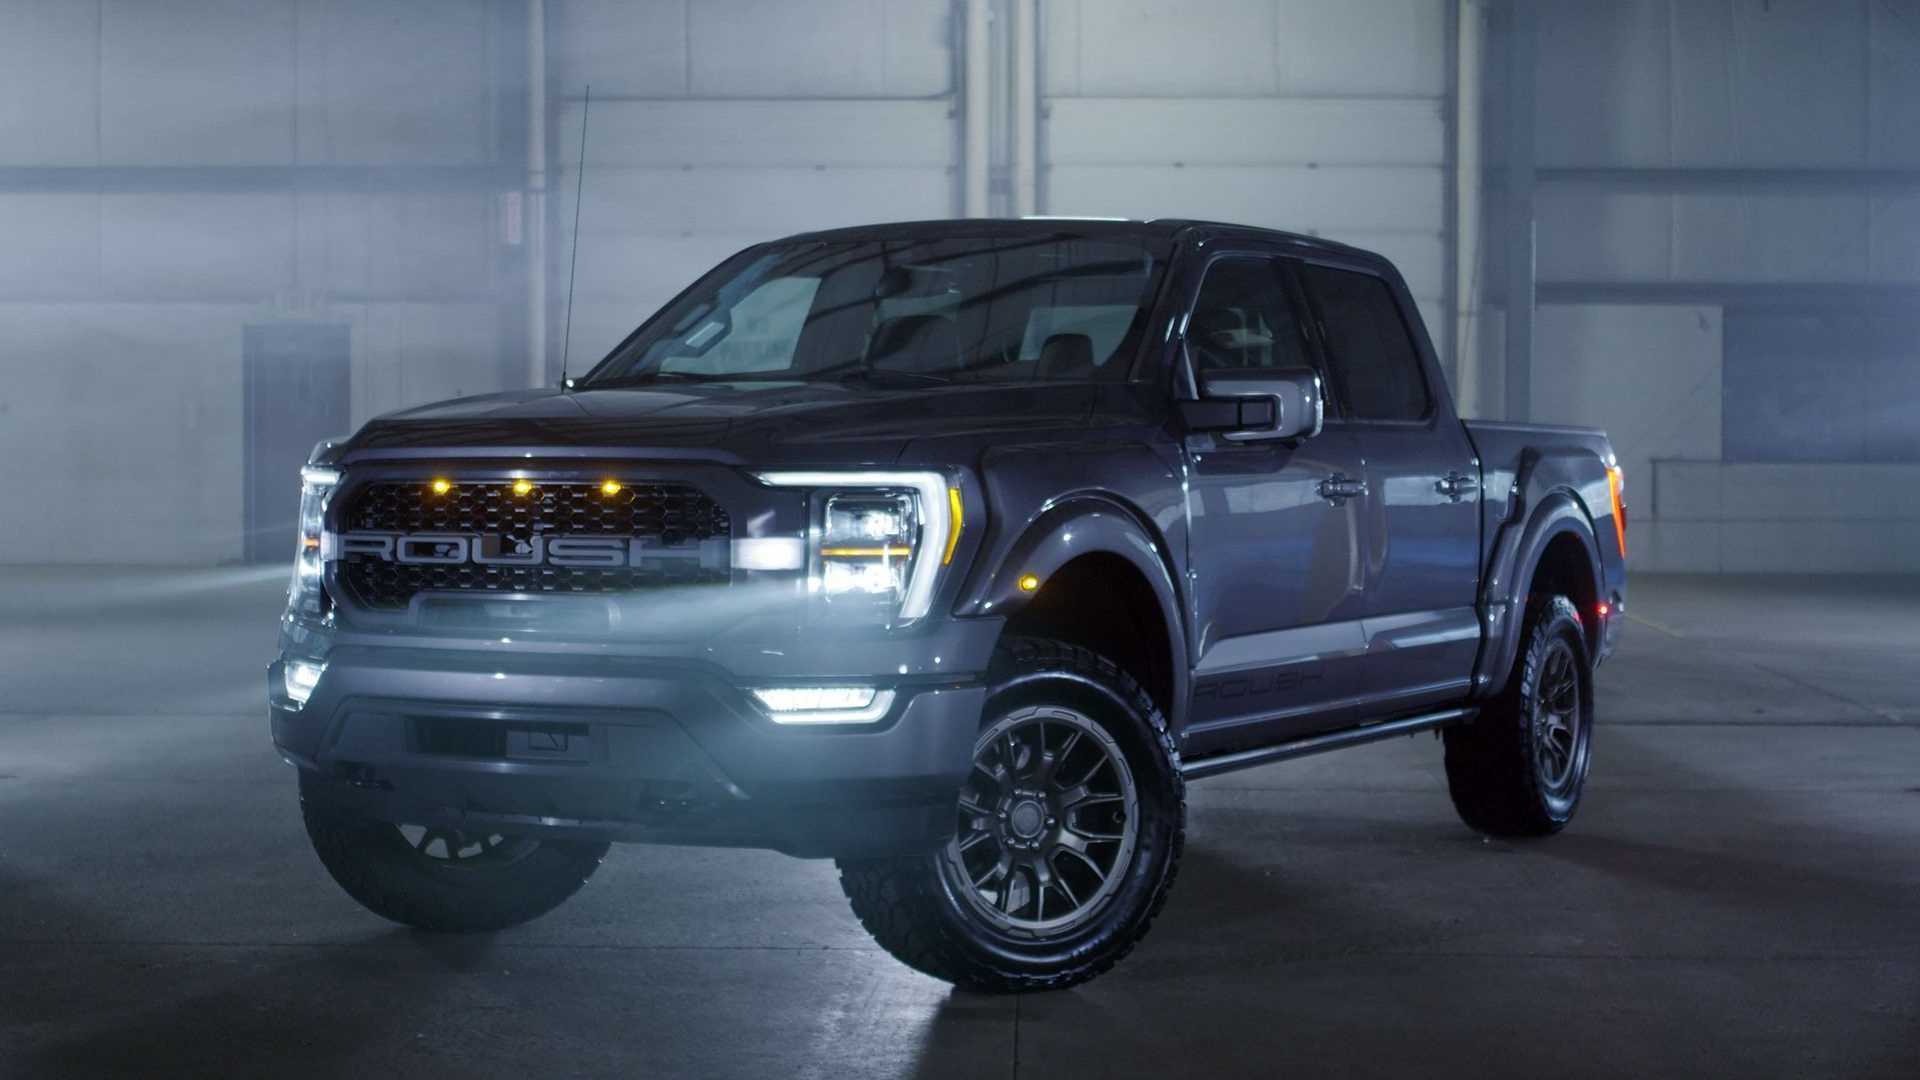 2021 Roush Ford F-150 three-quarters front